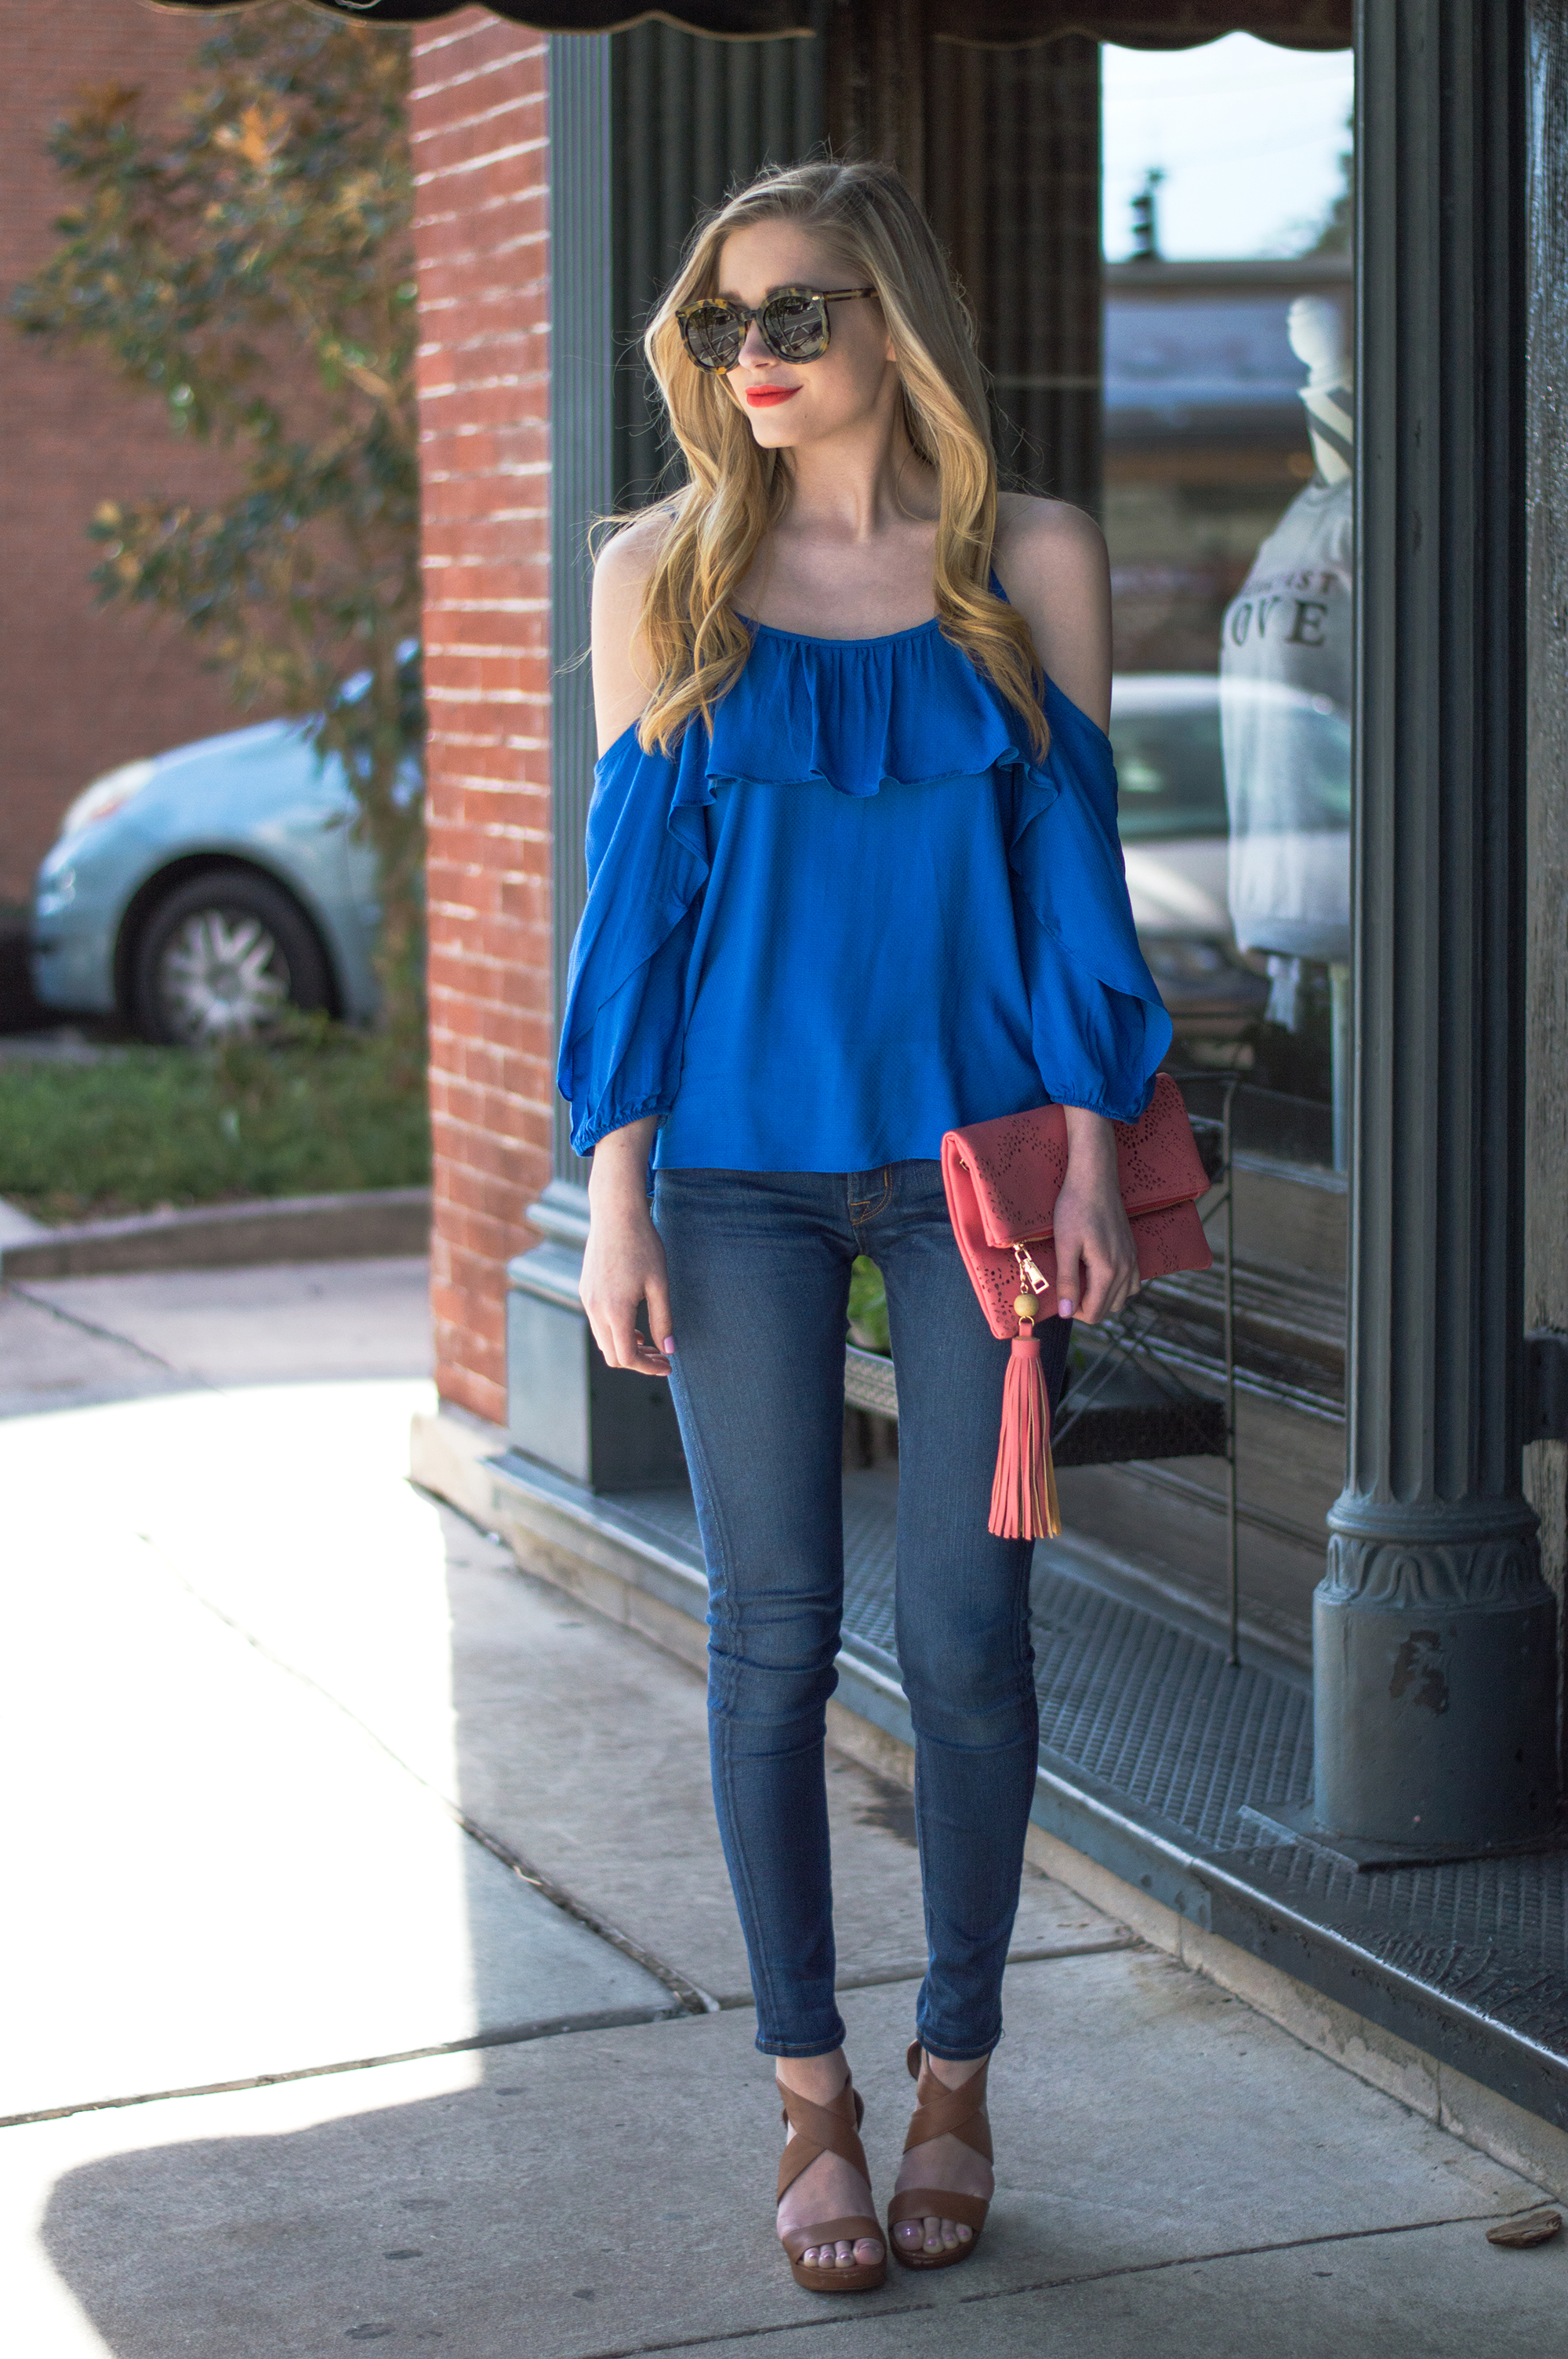 styelled-blog-elle-elisabeth-ootd-hudson-jeans-off-the-shoulder-top-karen-walker-super-duper-thistle-mac-lady-danger-jessica-simpson-brick-city-closet-spring-blue-02